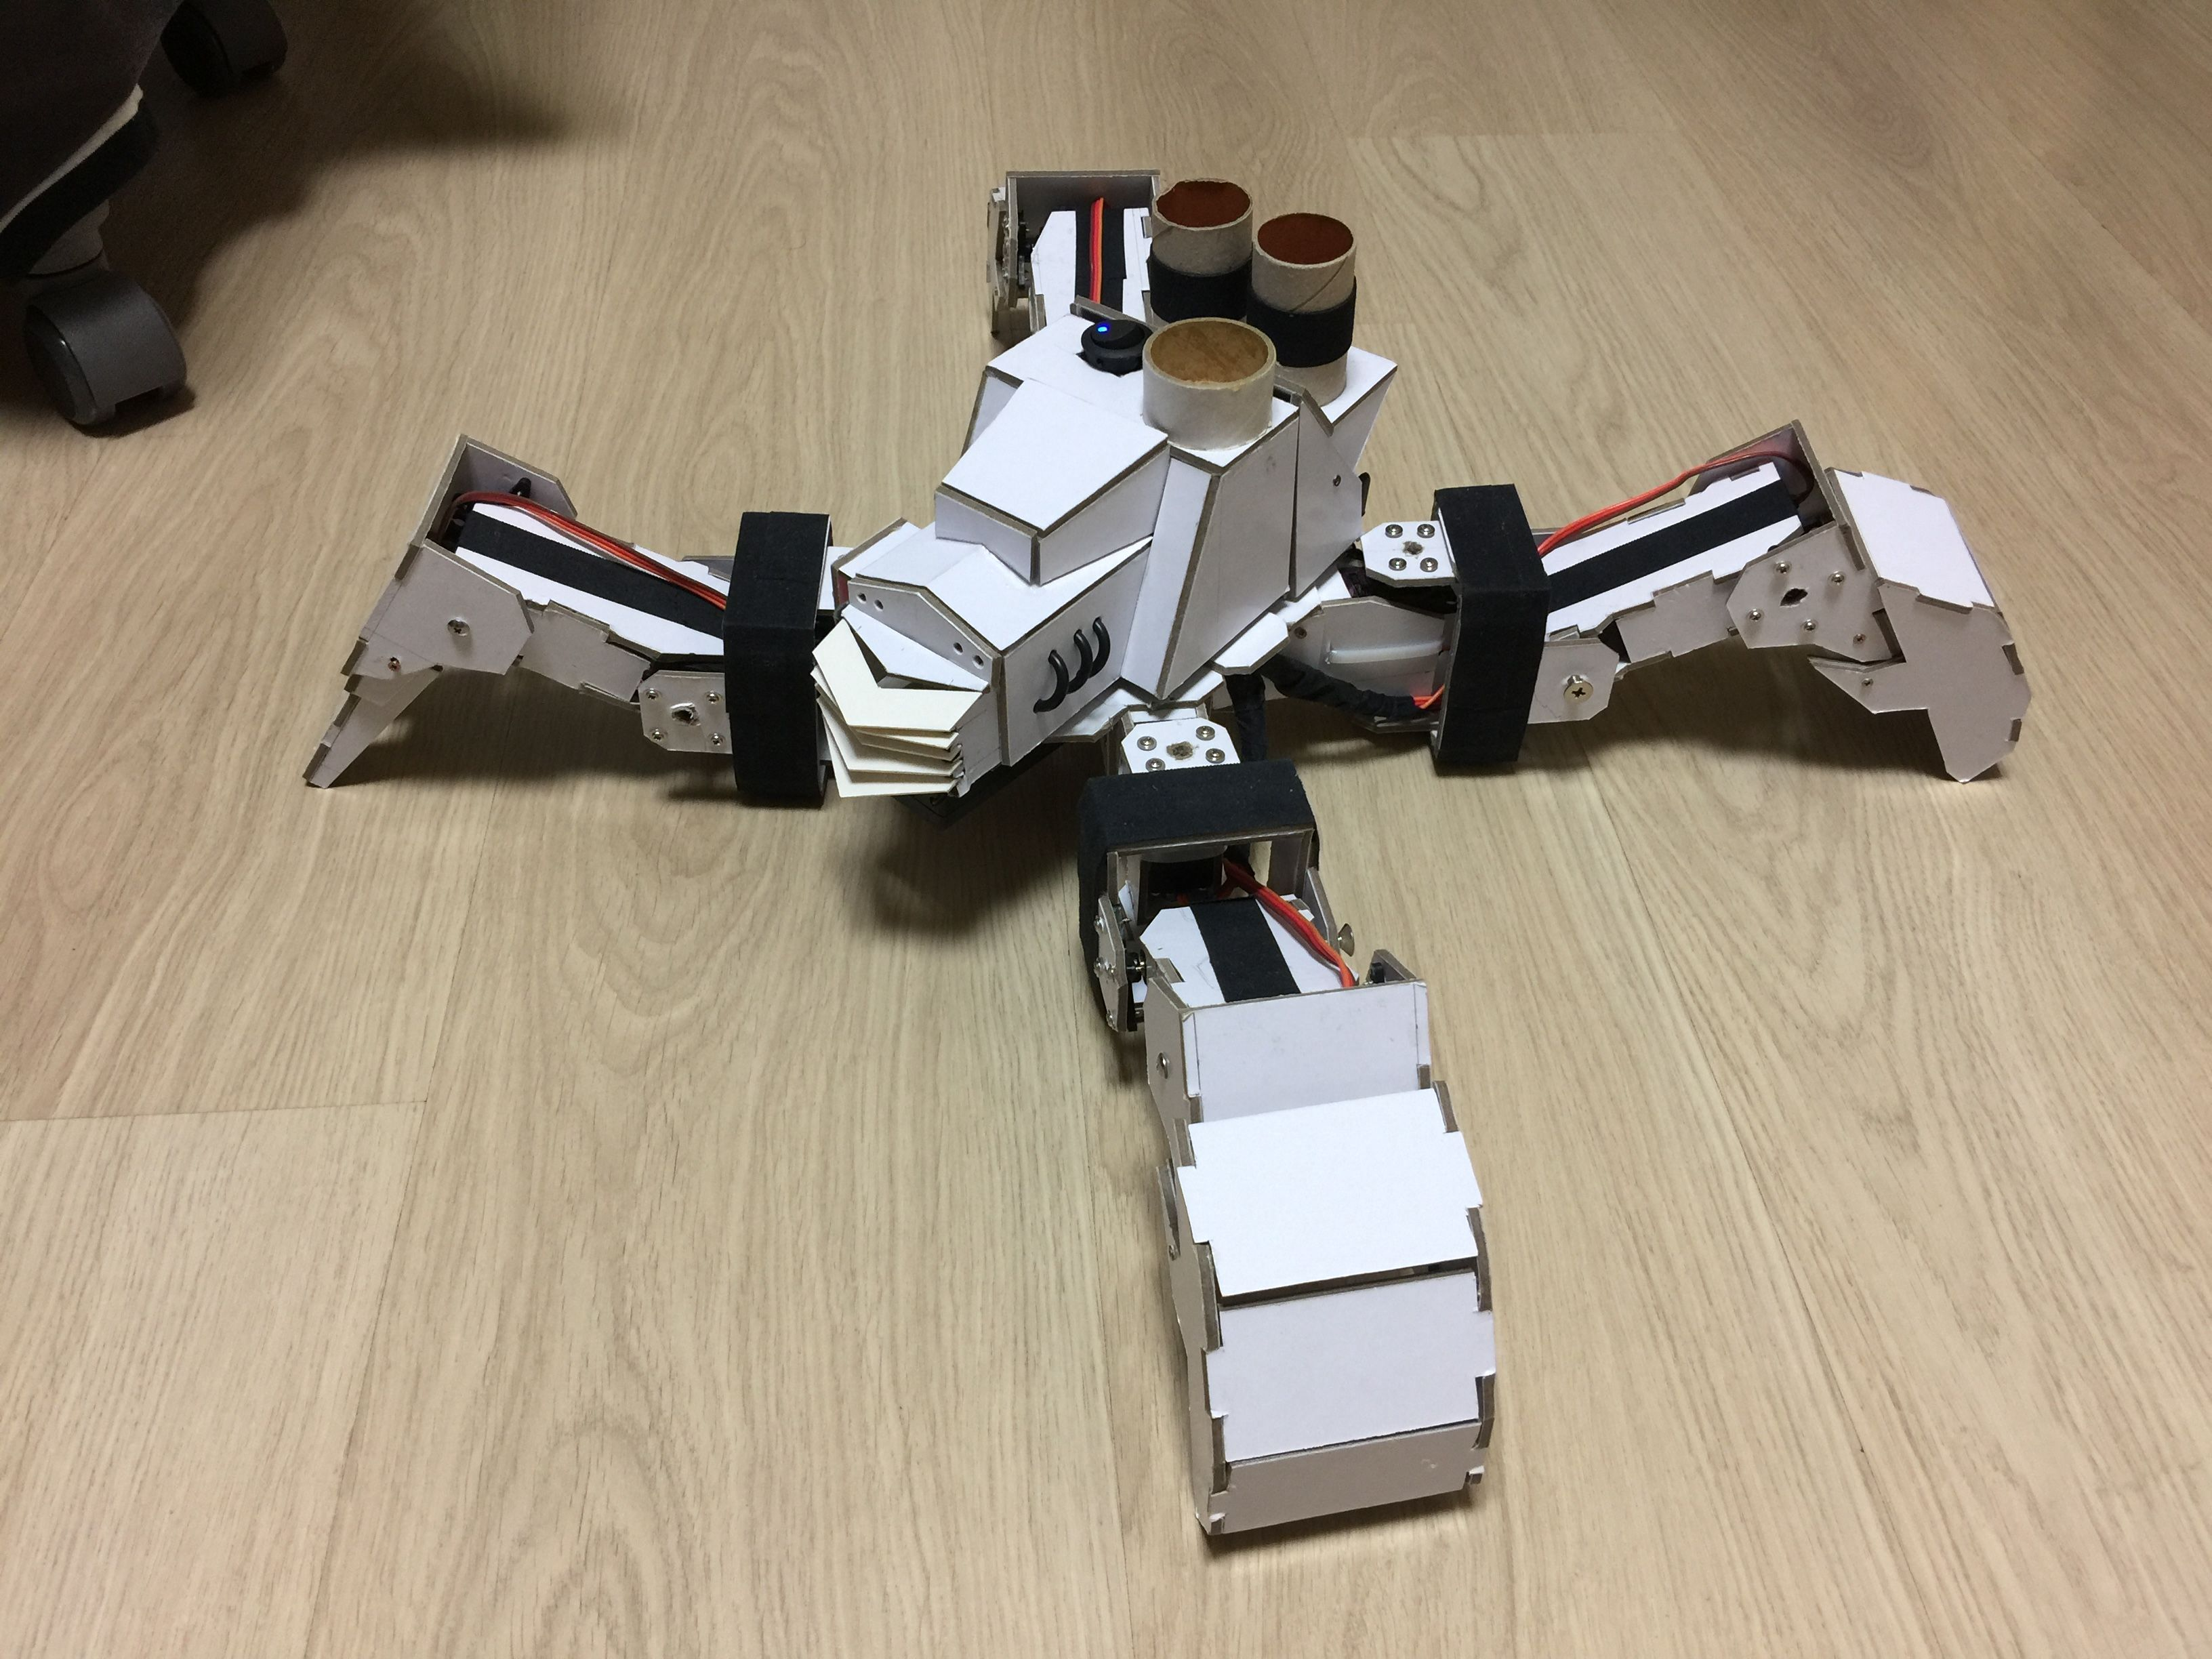 The enhancement of the quadruped robot